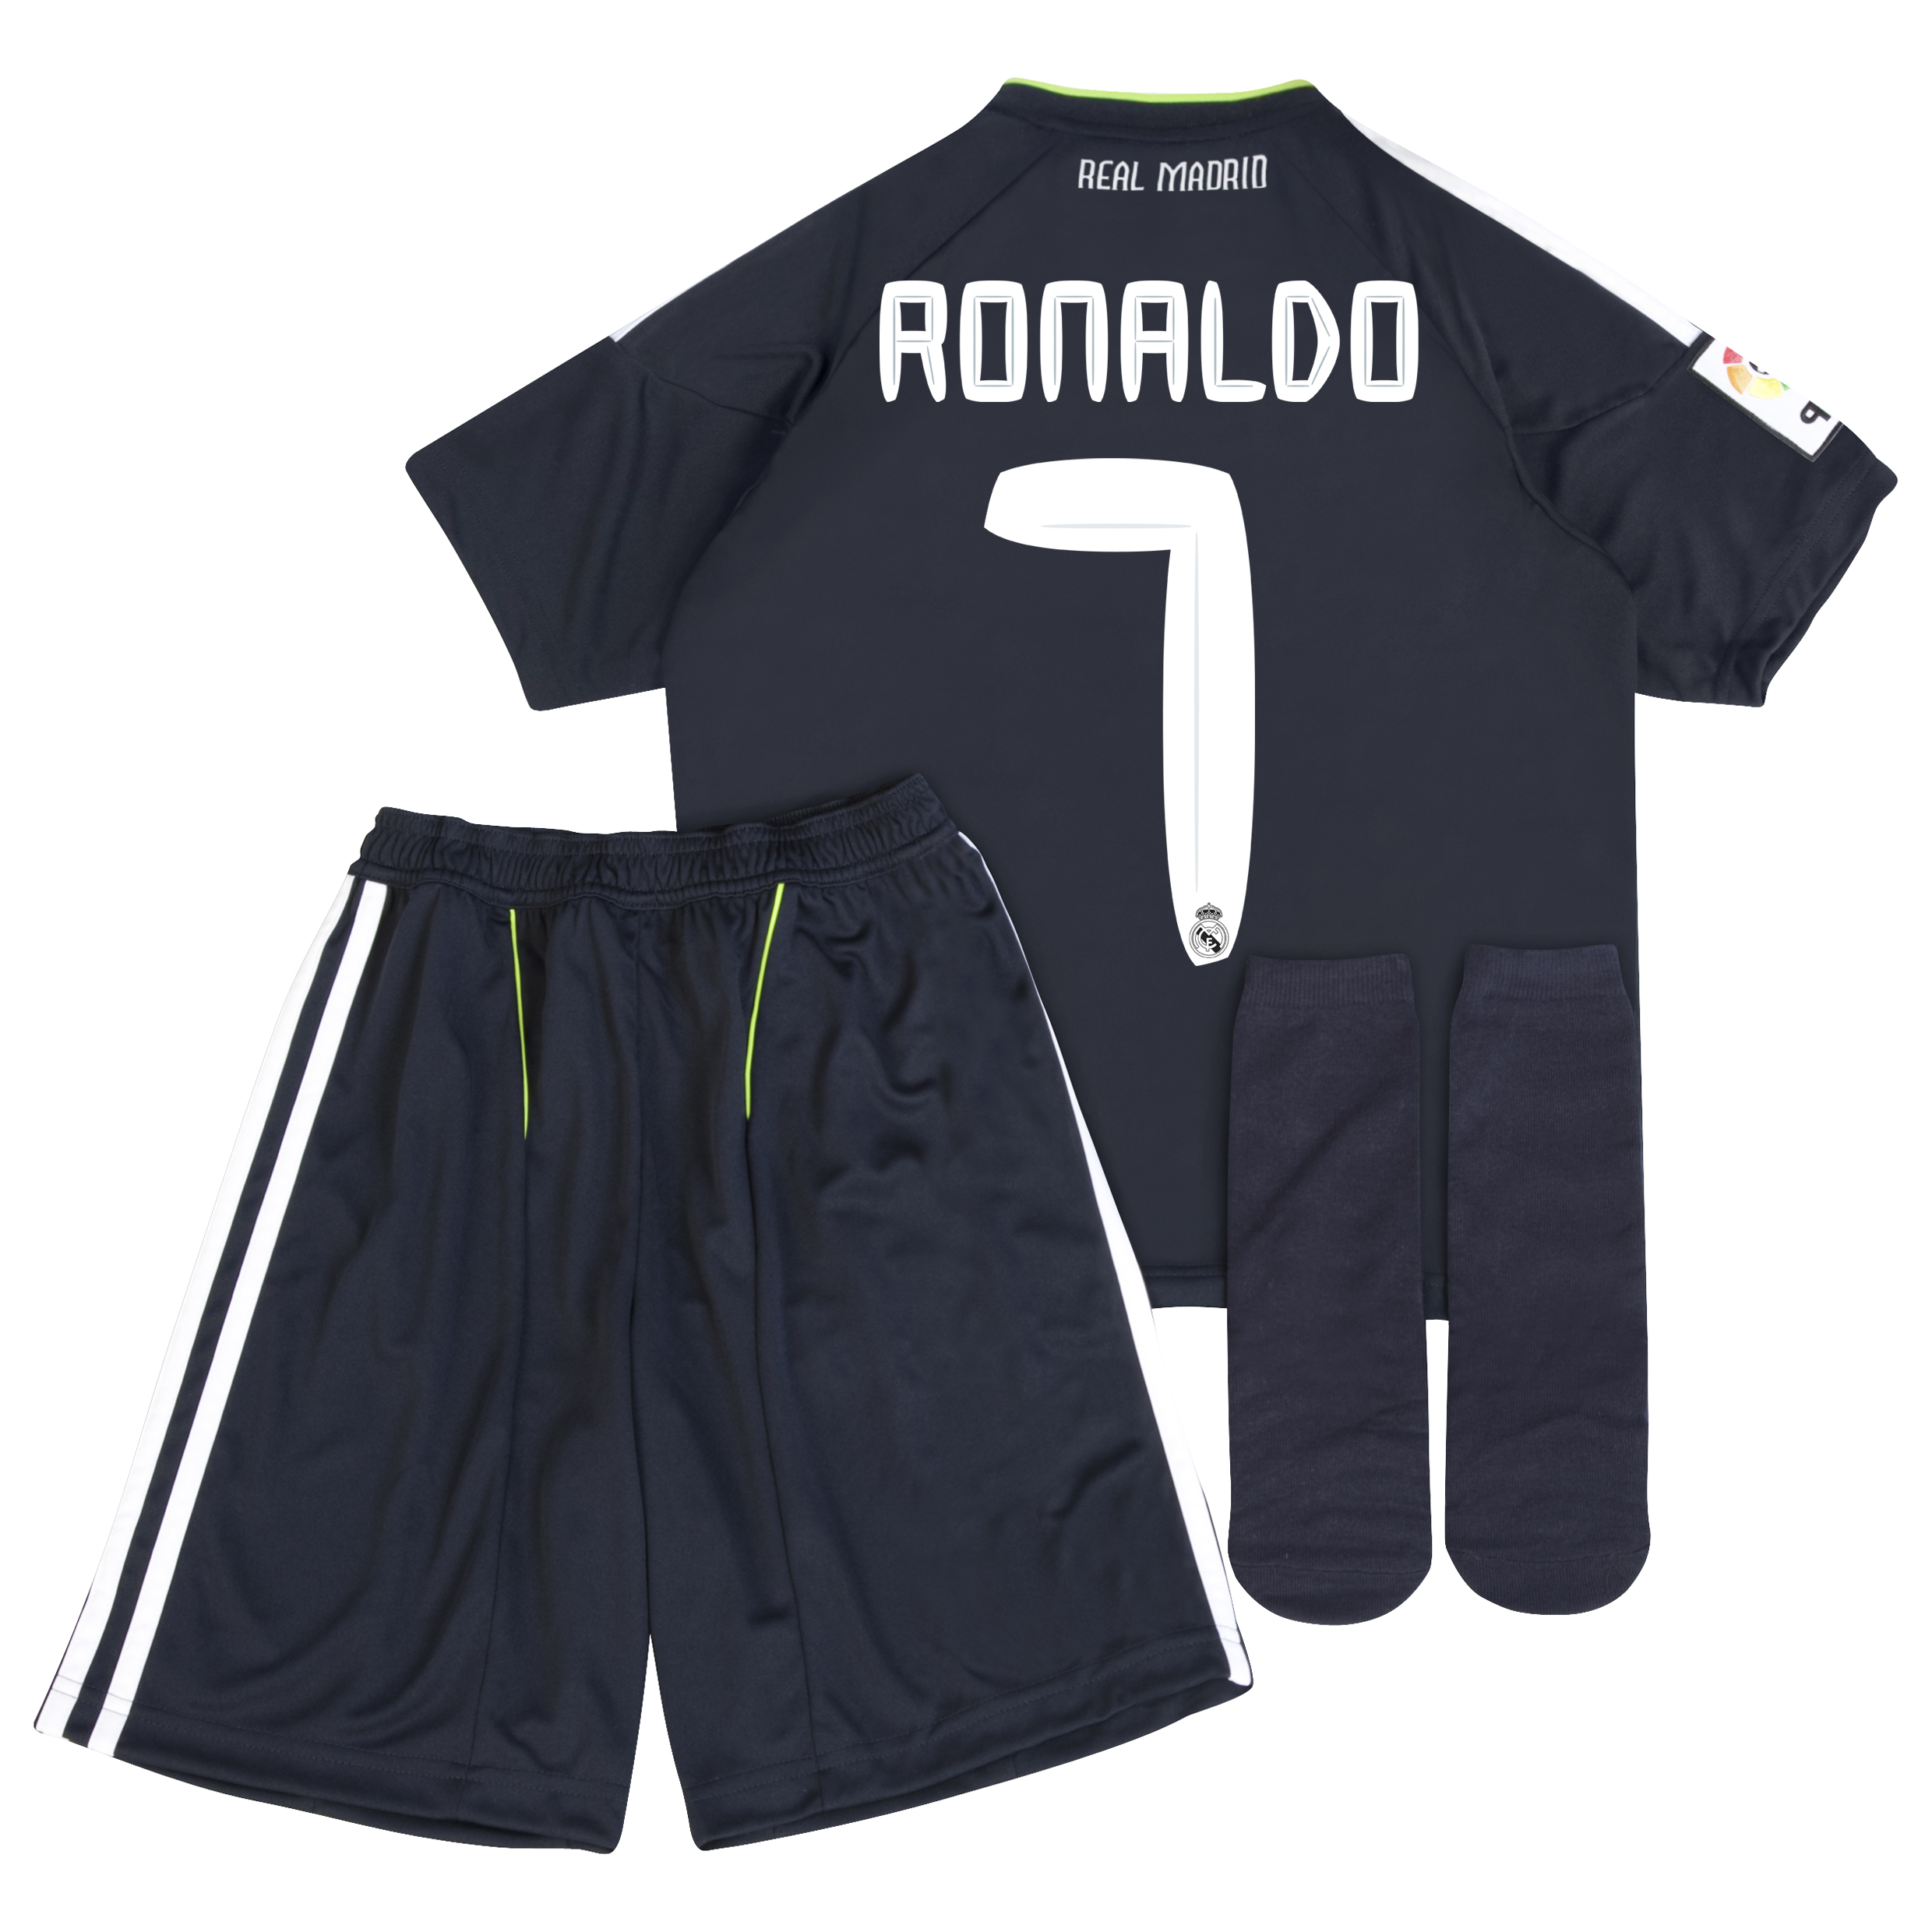 Real Madrid Away Minikit Pack 2010/11 with Ronaldo 7 printing